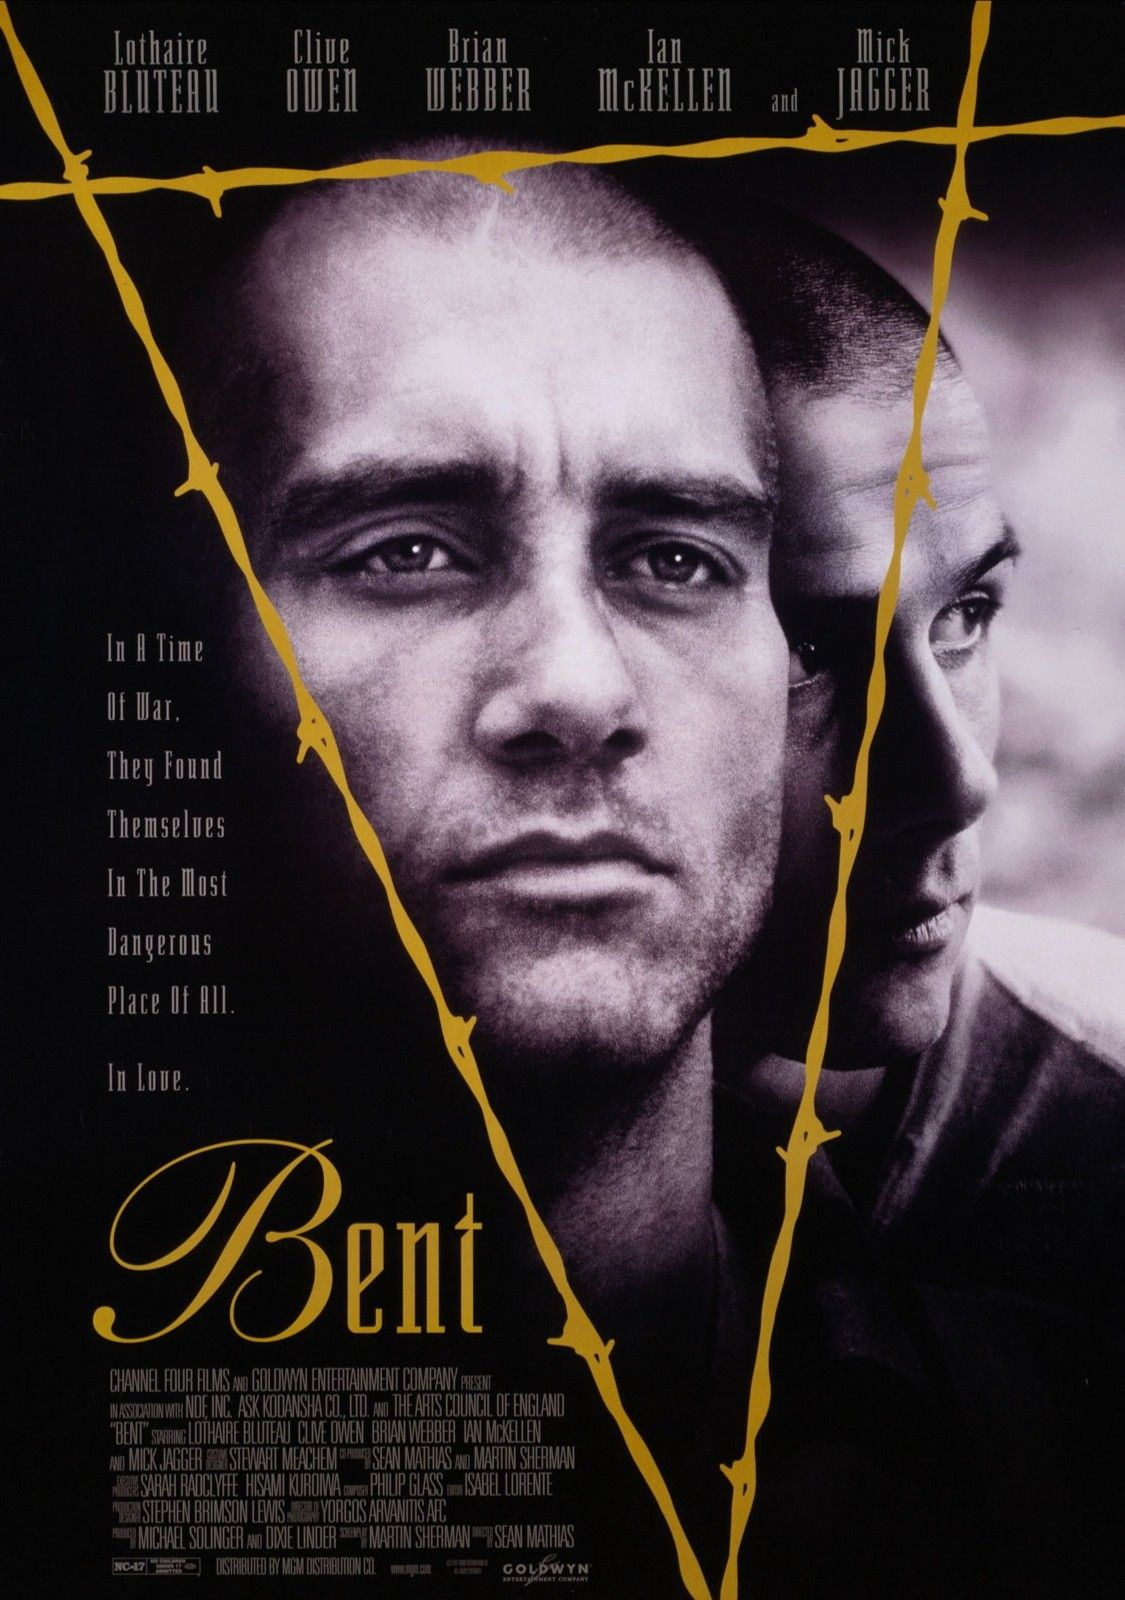 Bent 1997 In 2021 Love Film Adventure Film Epic Film